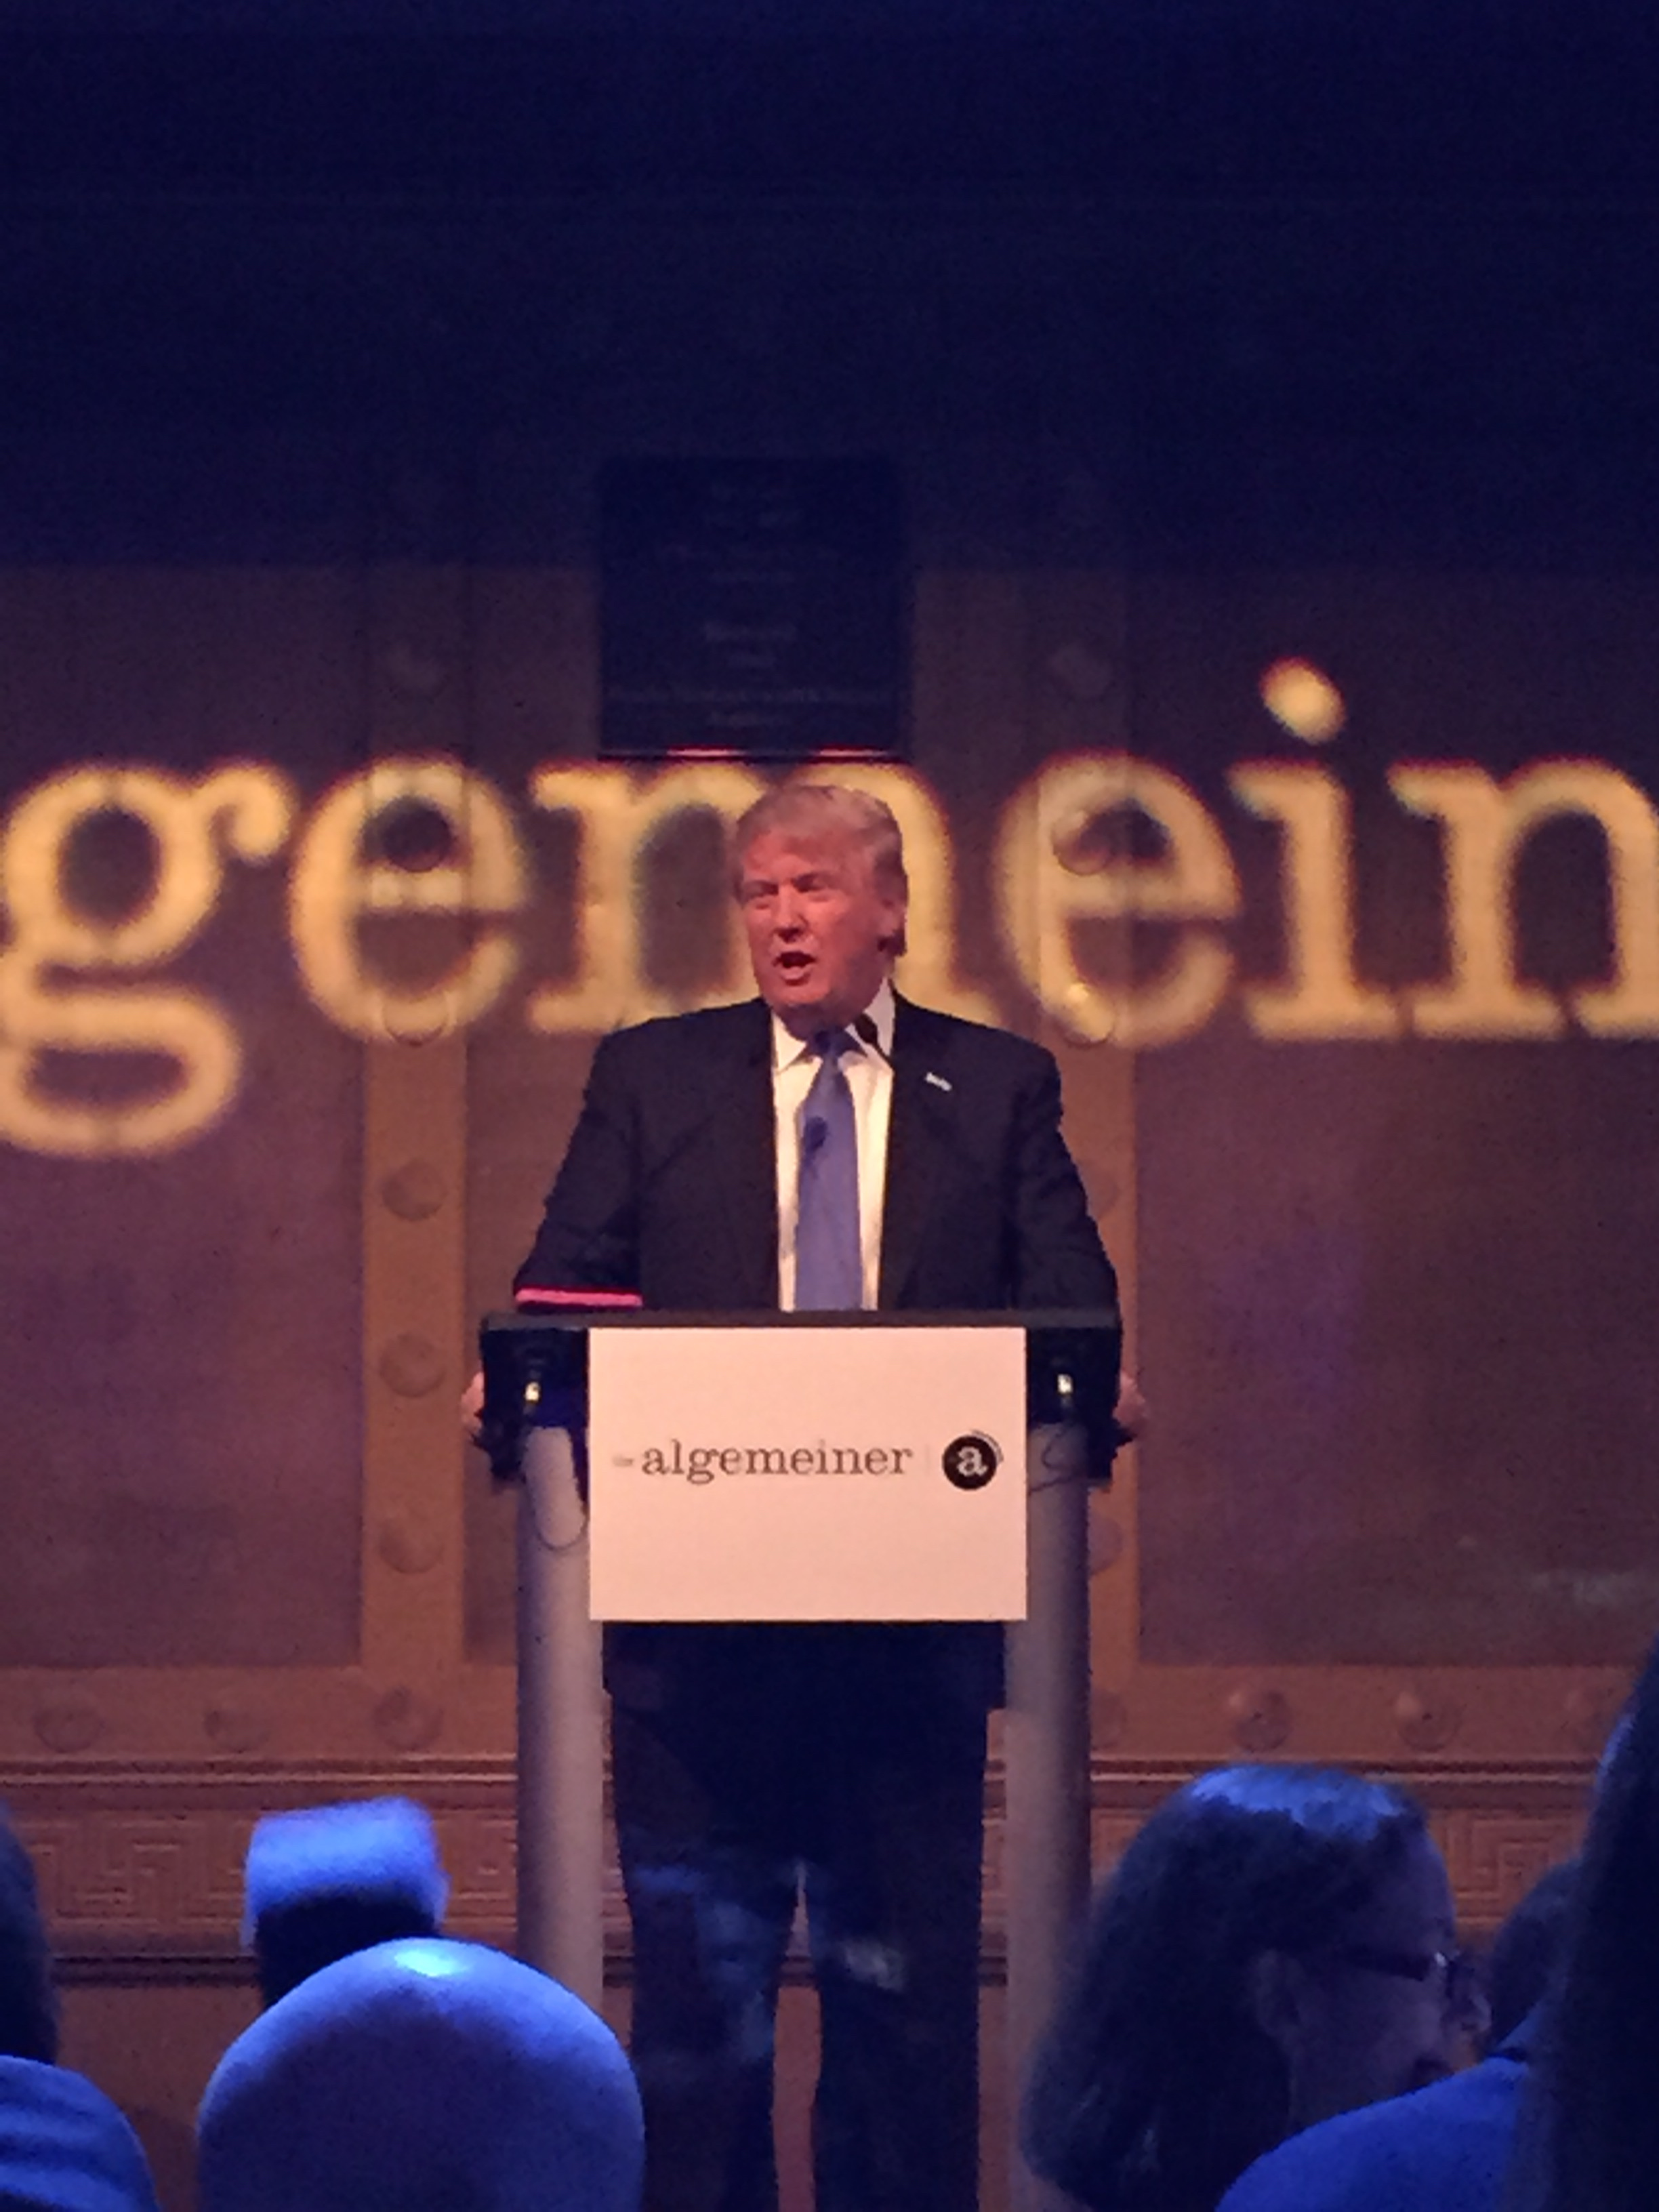 Donald Trump addressing the crowd after receiving the Algemeiner Liberty Award at the Jewish 100 Gala